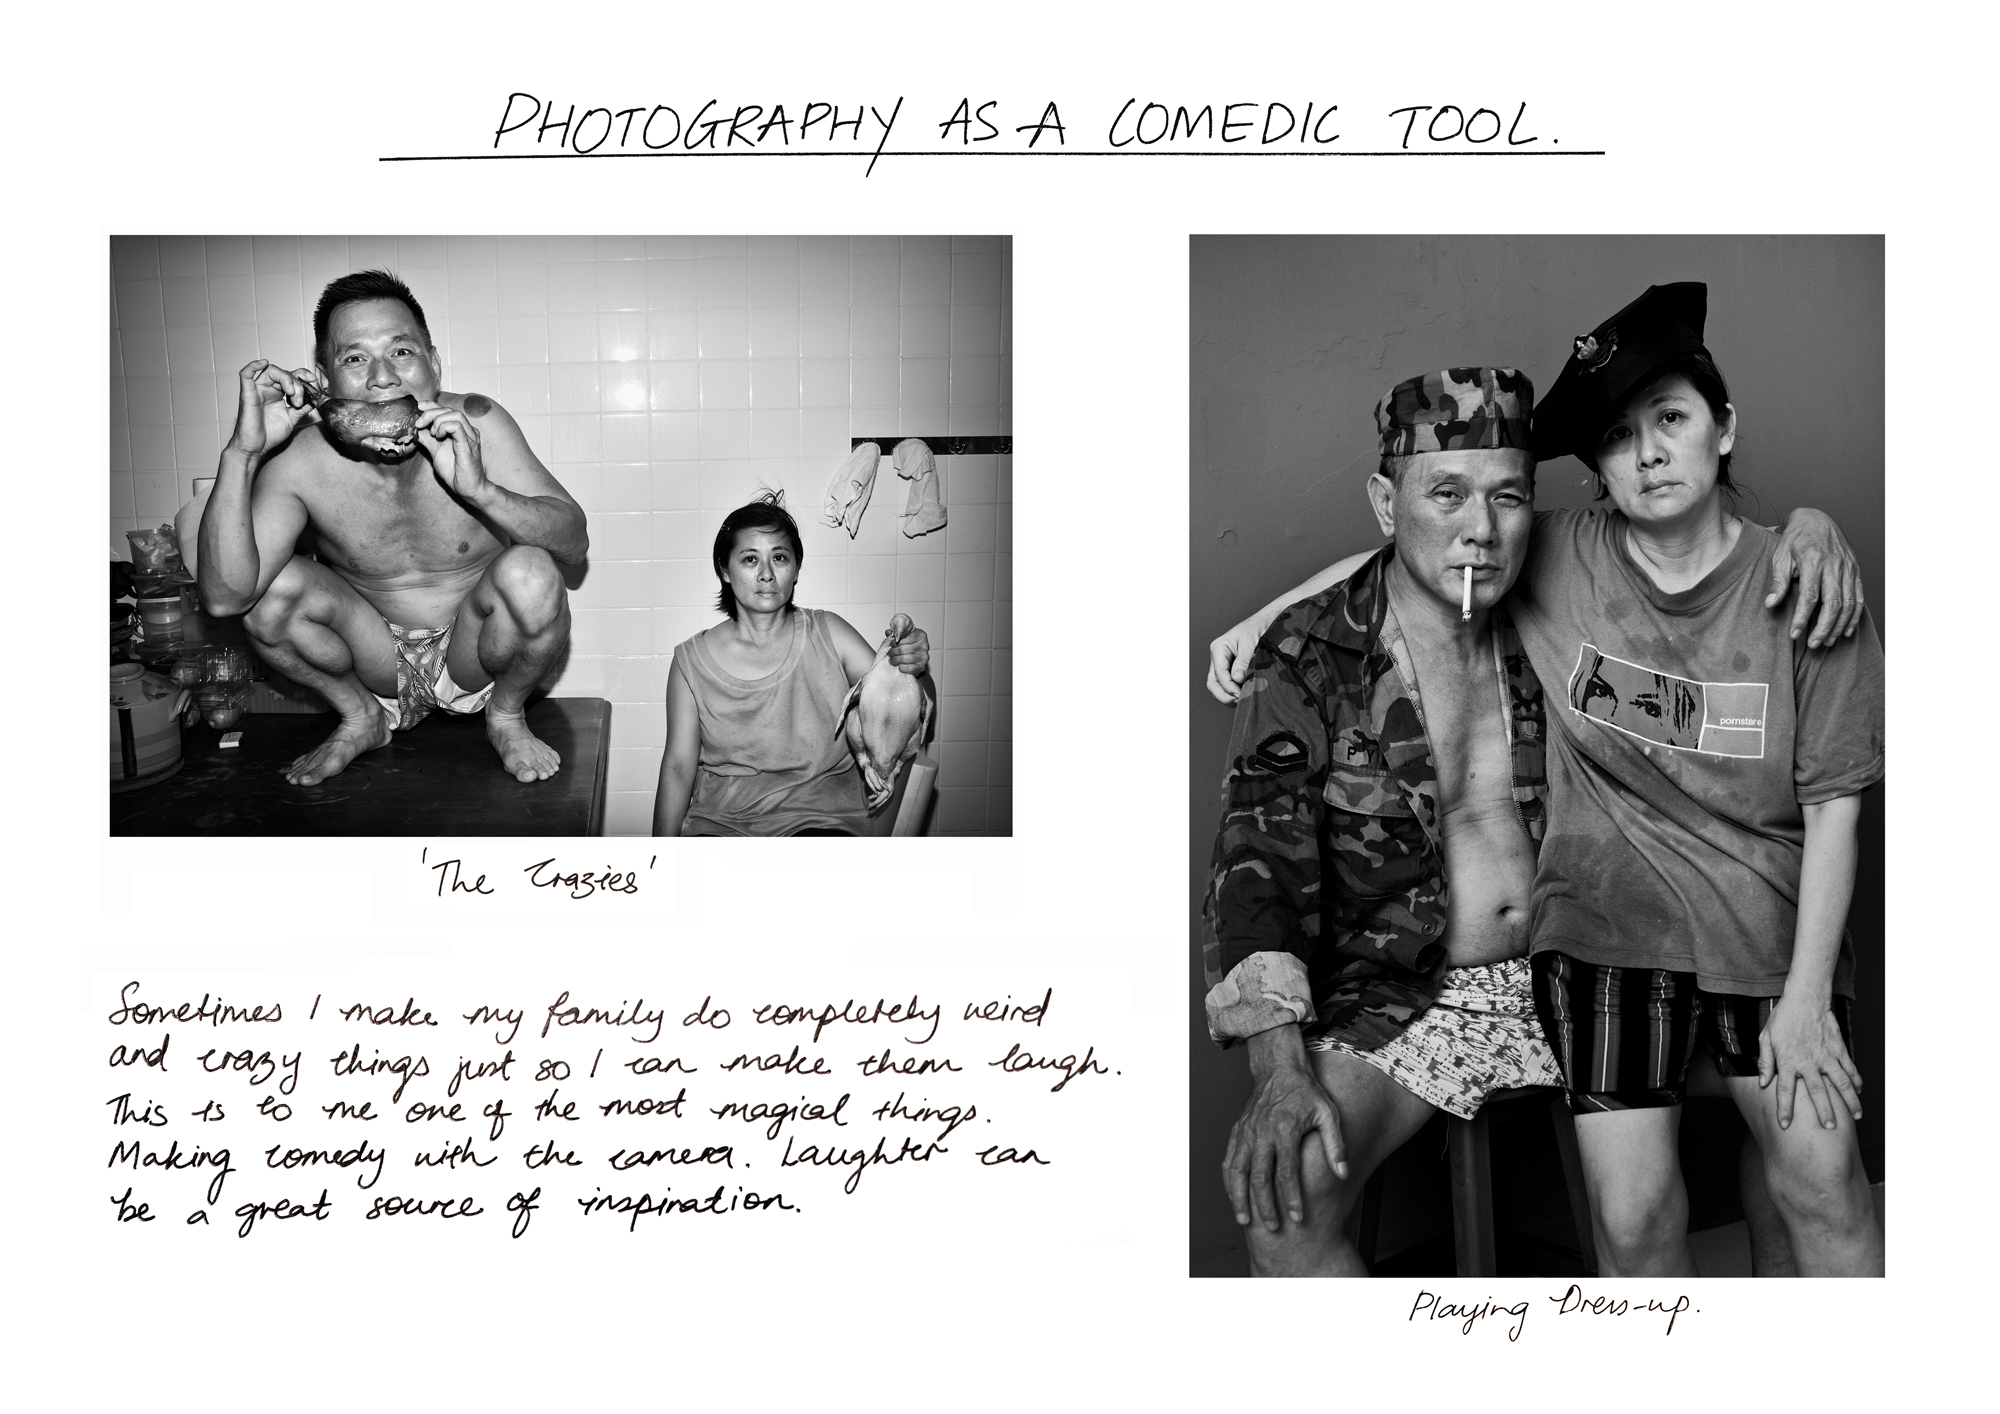 Photography as a Comedic Tool